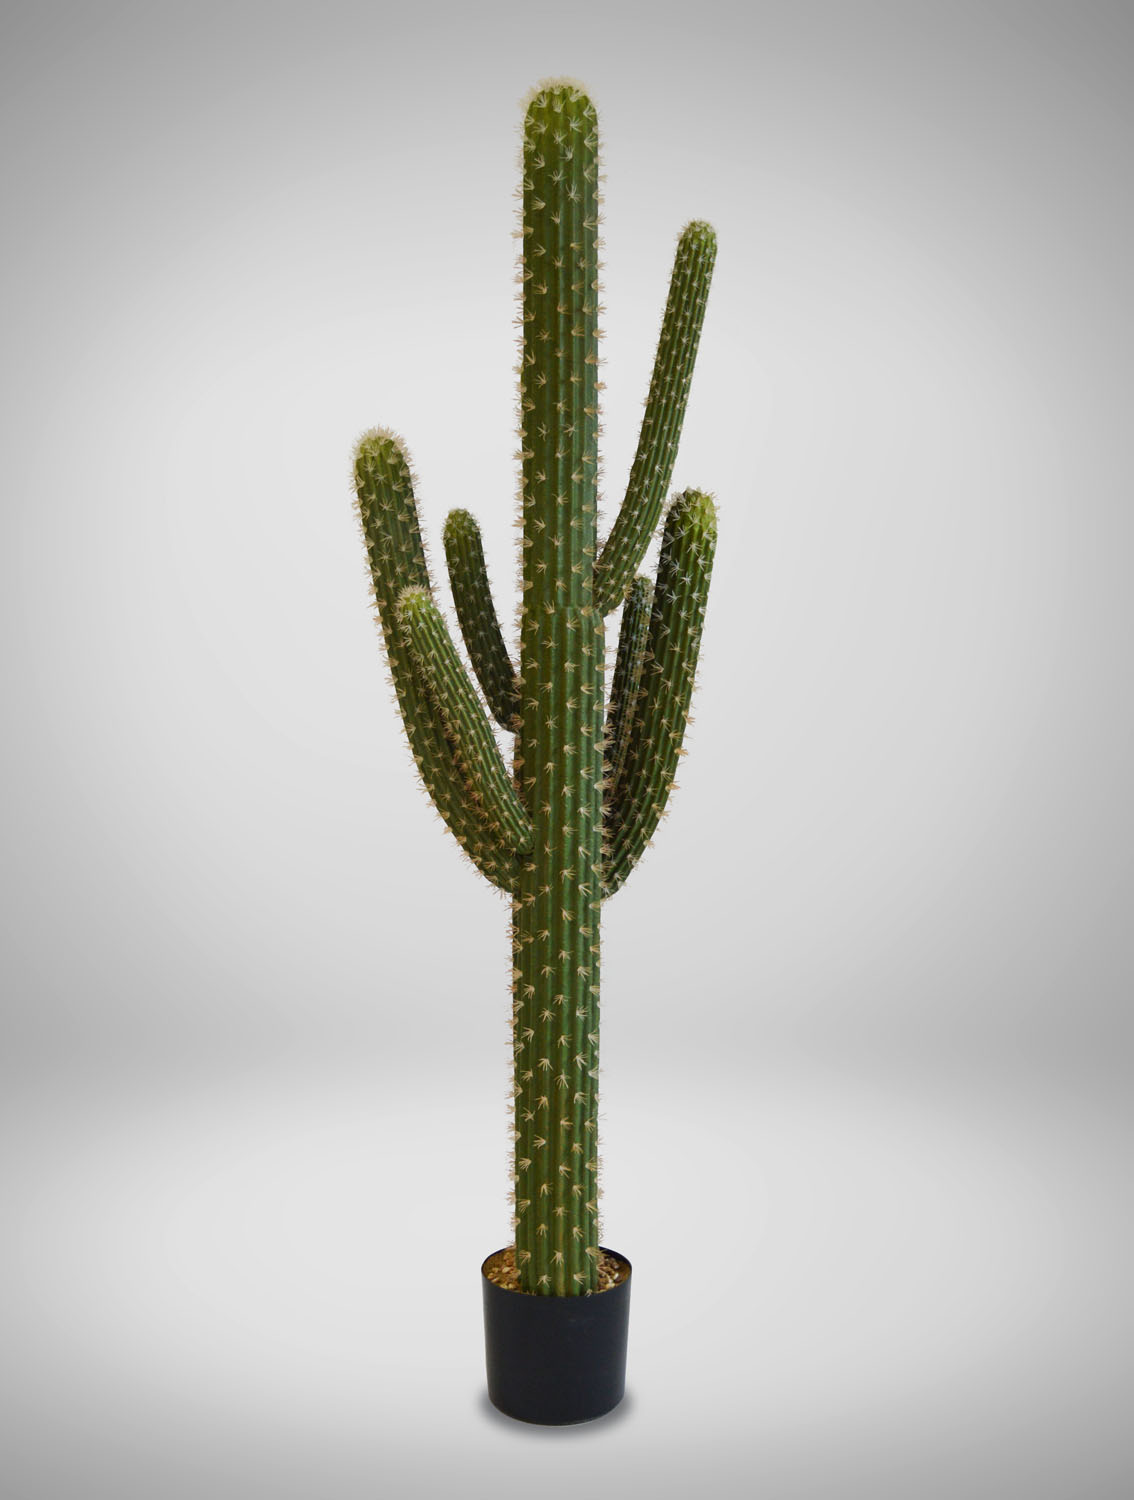 Cactus Saguaro Tall West Coast Event Productions Inc